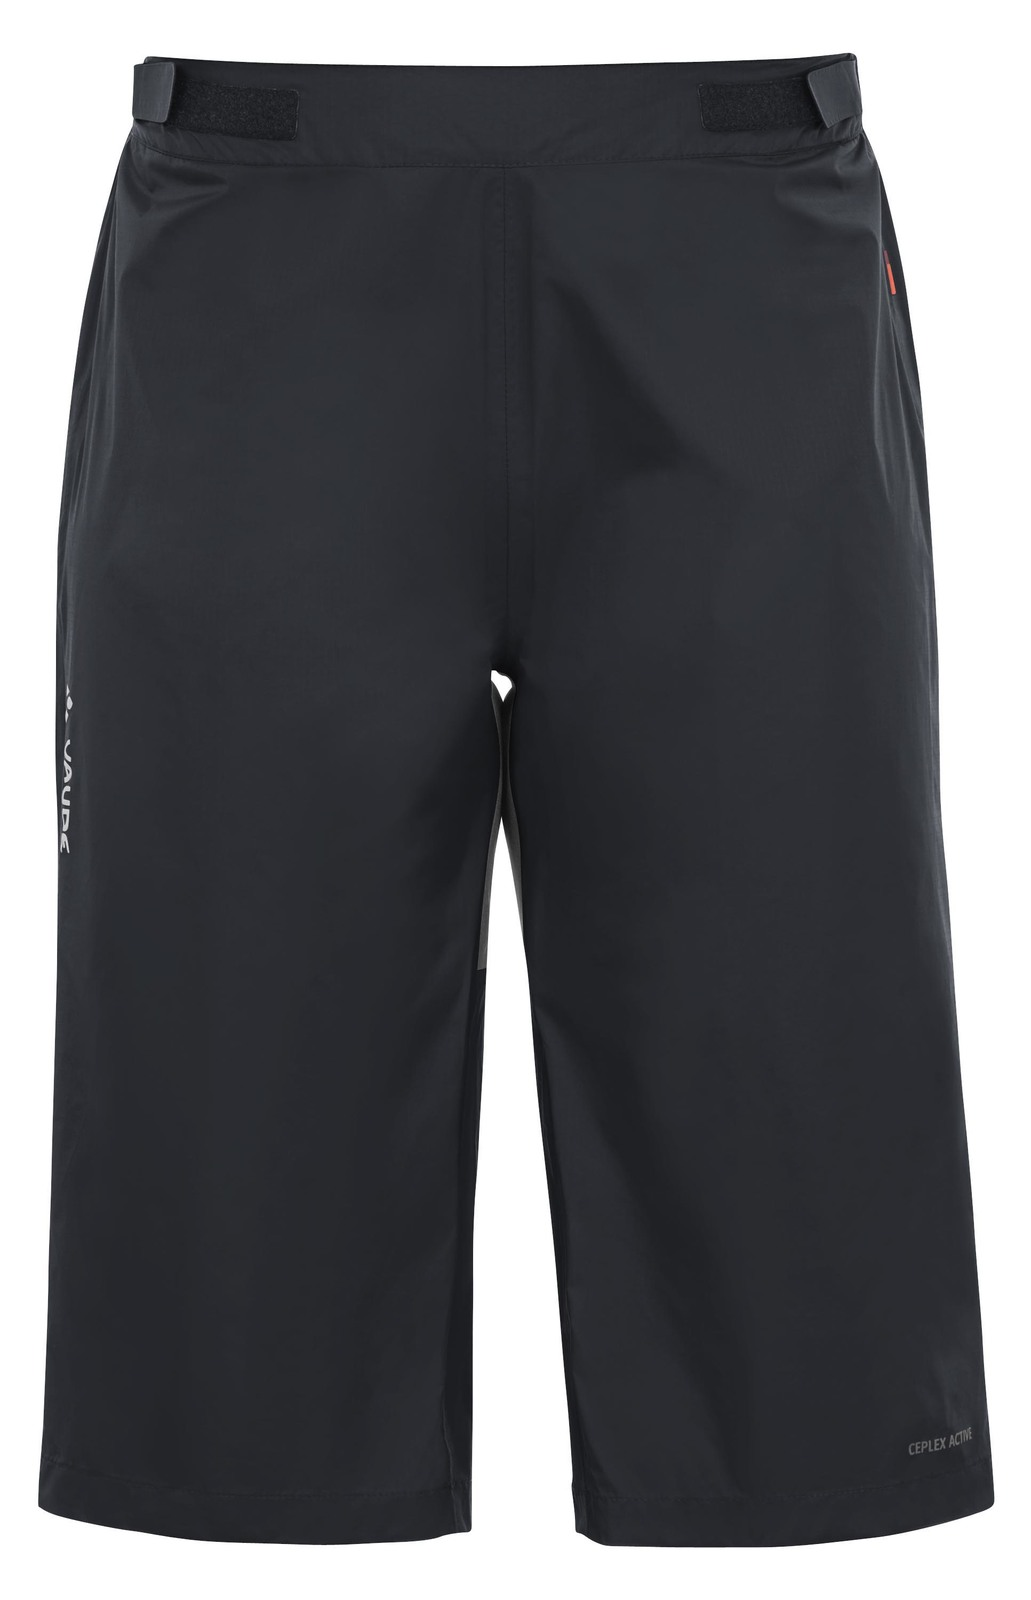 VAUDE Women´s Tremalzo Rain Shorts black Größe 38 - schneider-sports